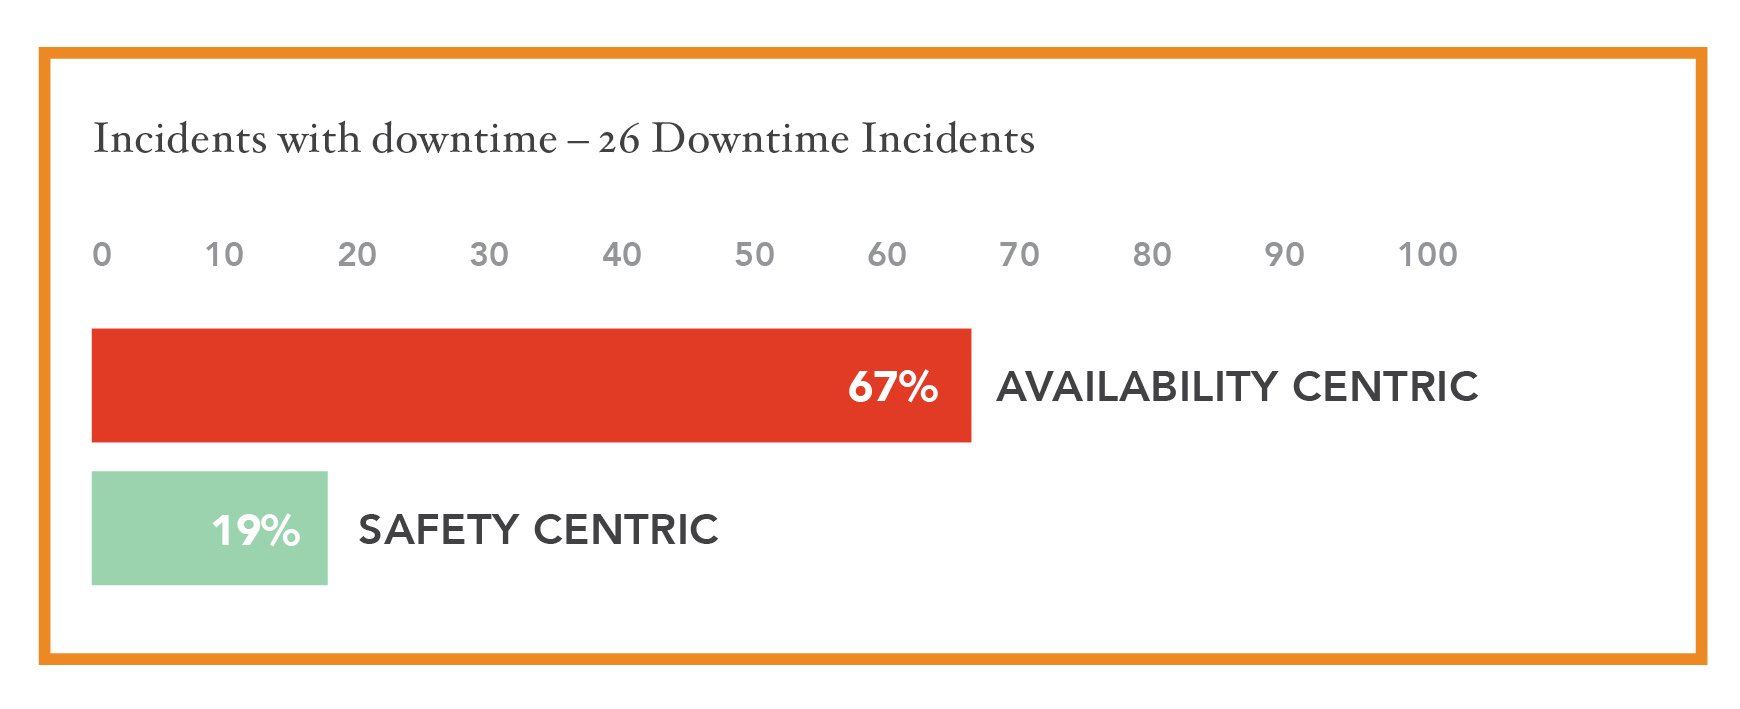 Figure 7: Incidents with downtime